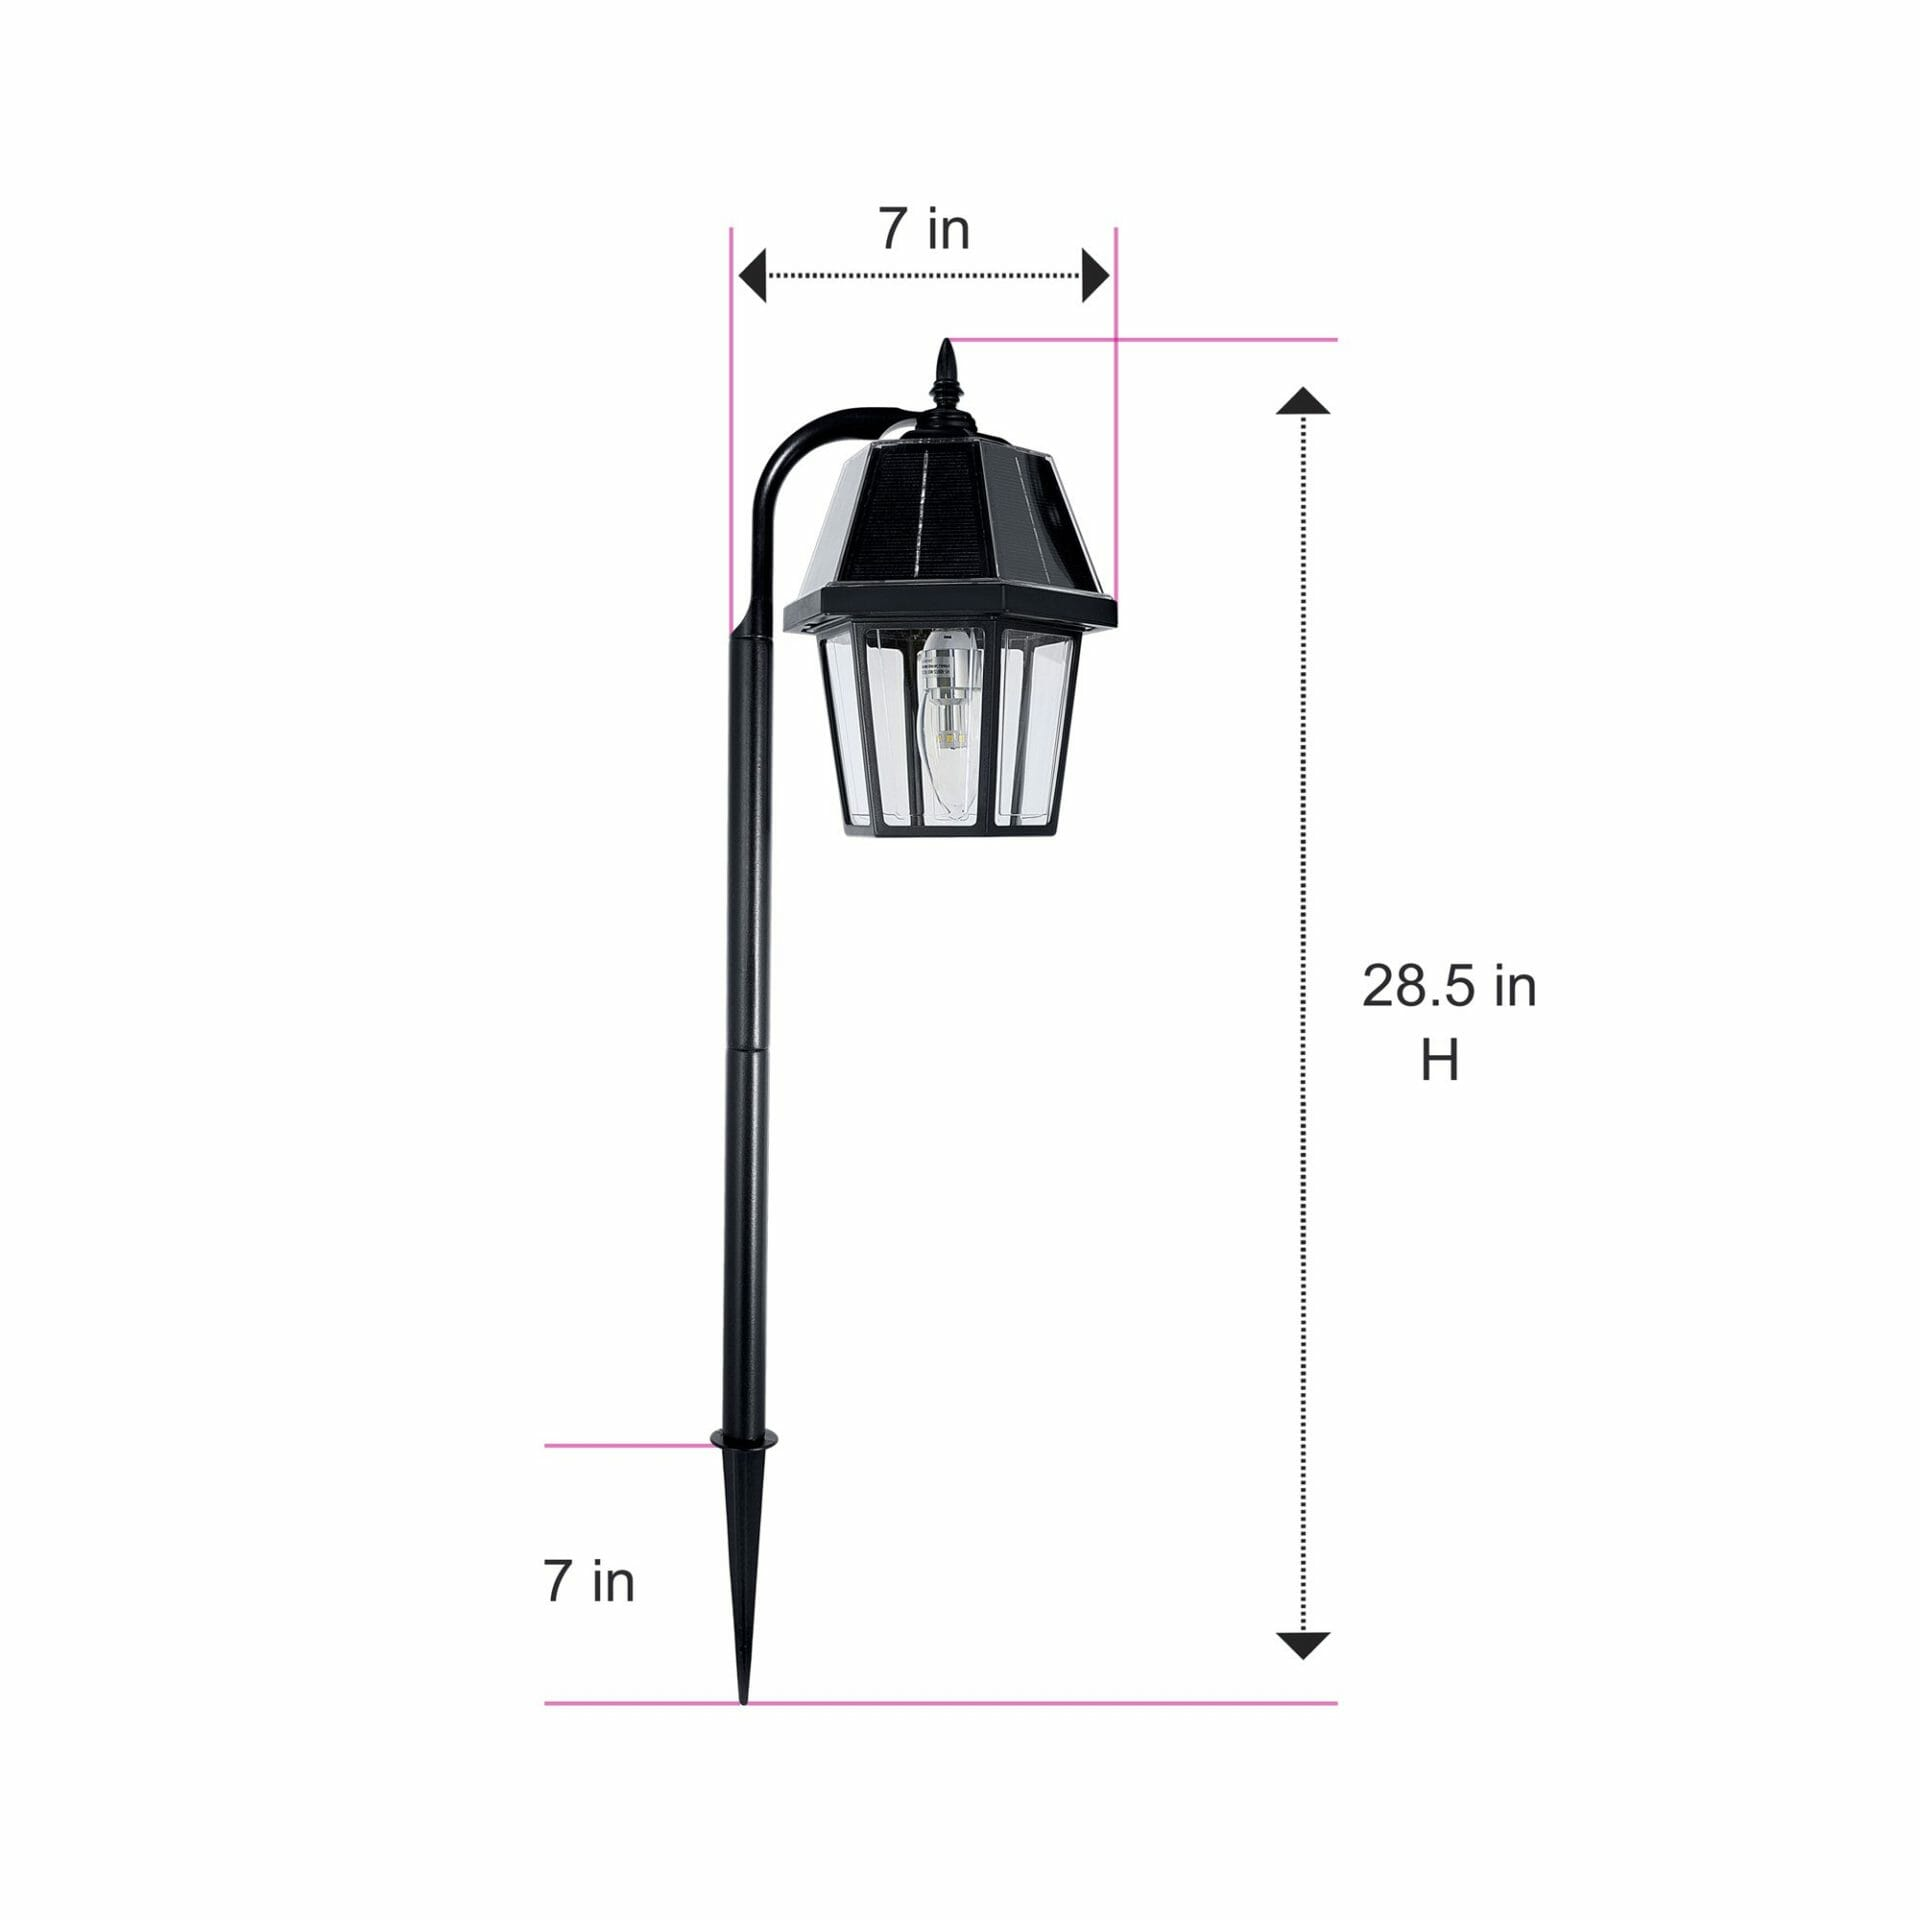 Solar Garden Light Dimensions